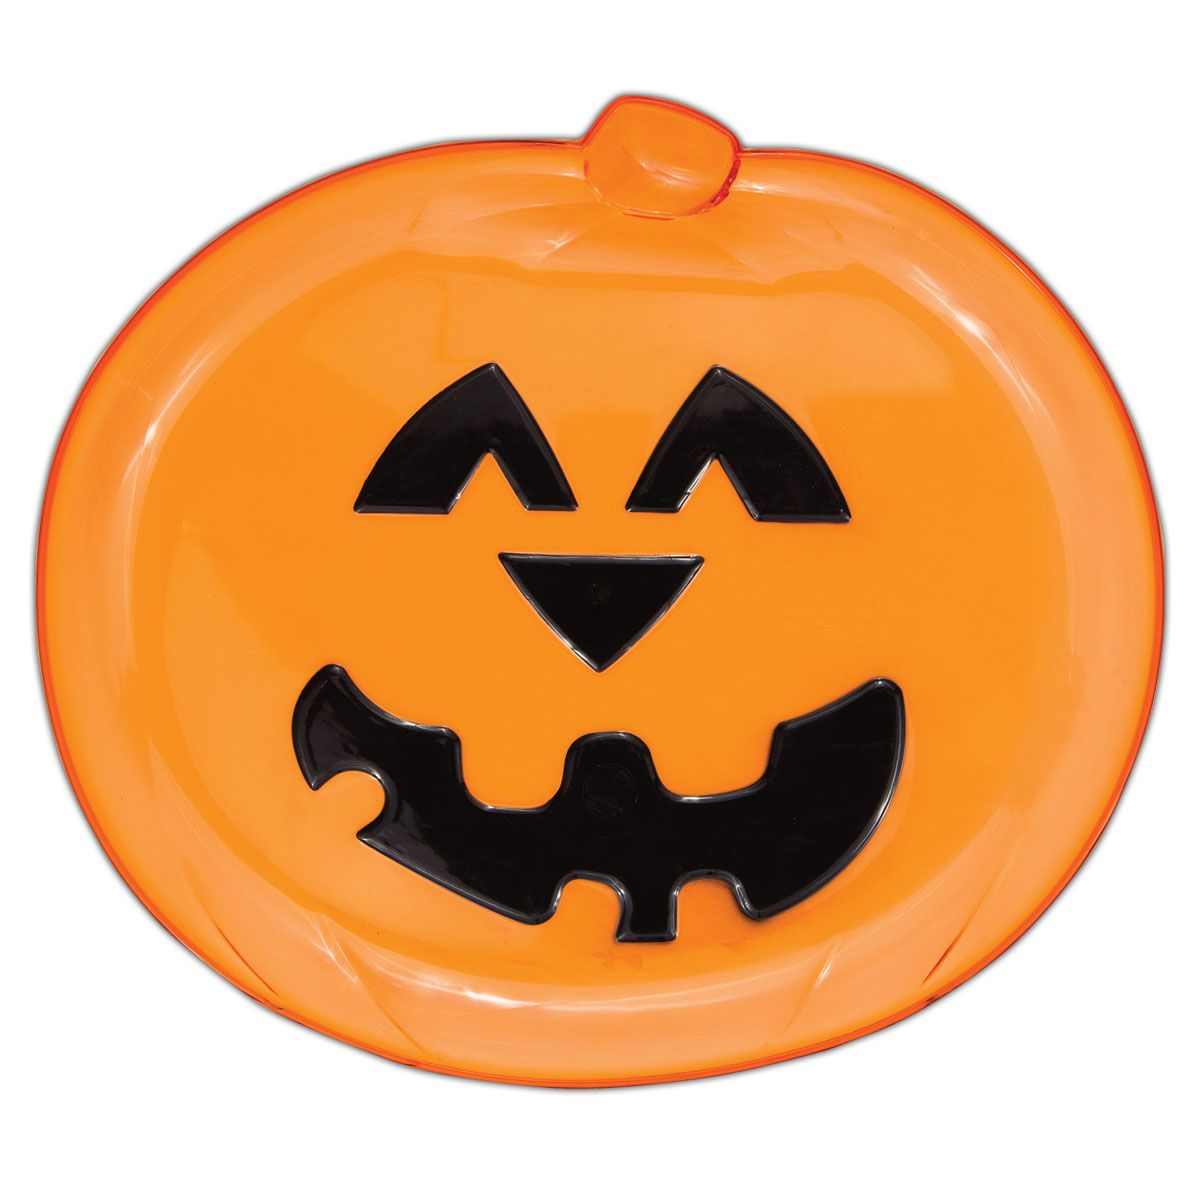 Pumpkin Halloween Serving Tray